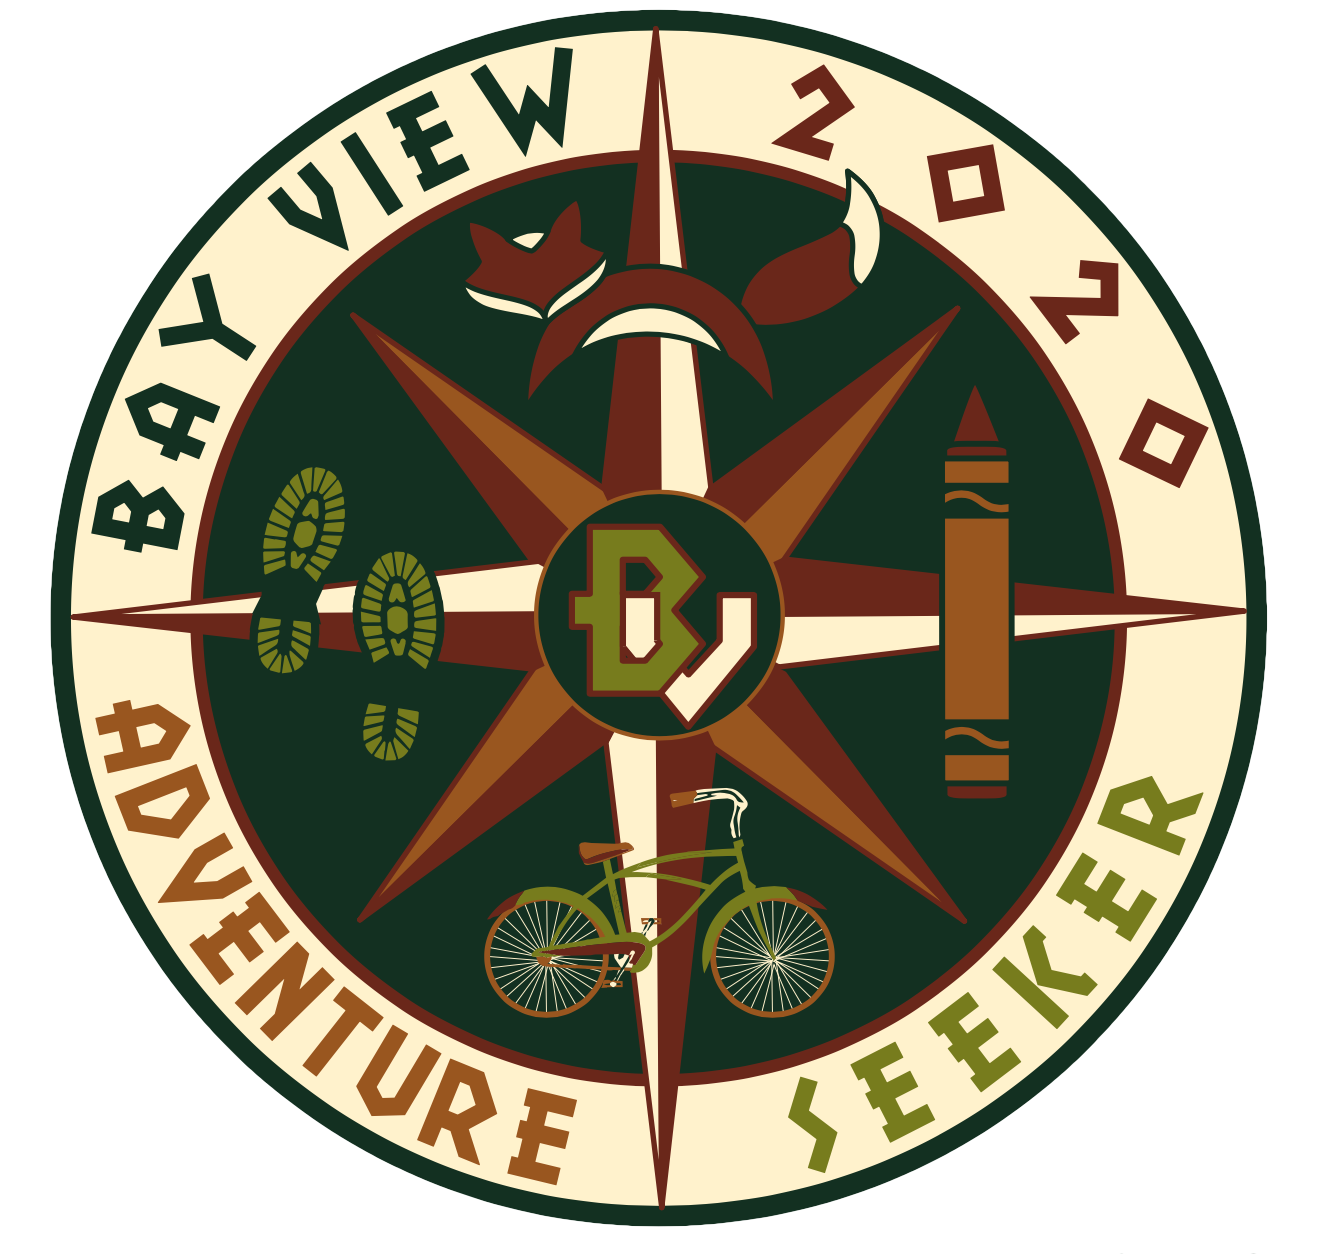 Bay View Adventure Seekers